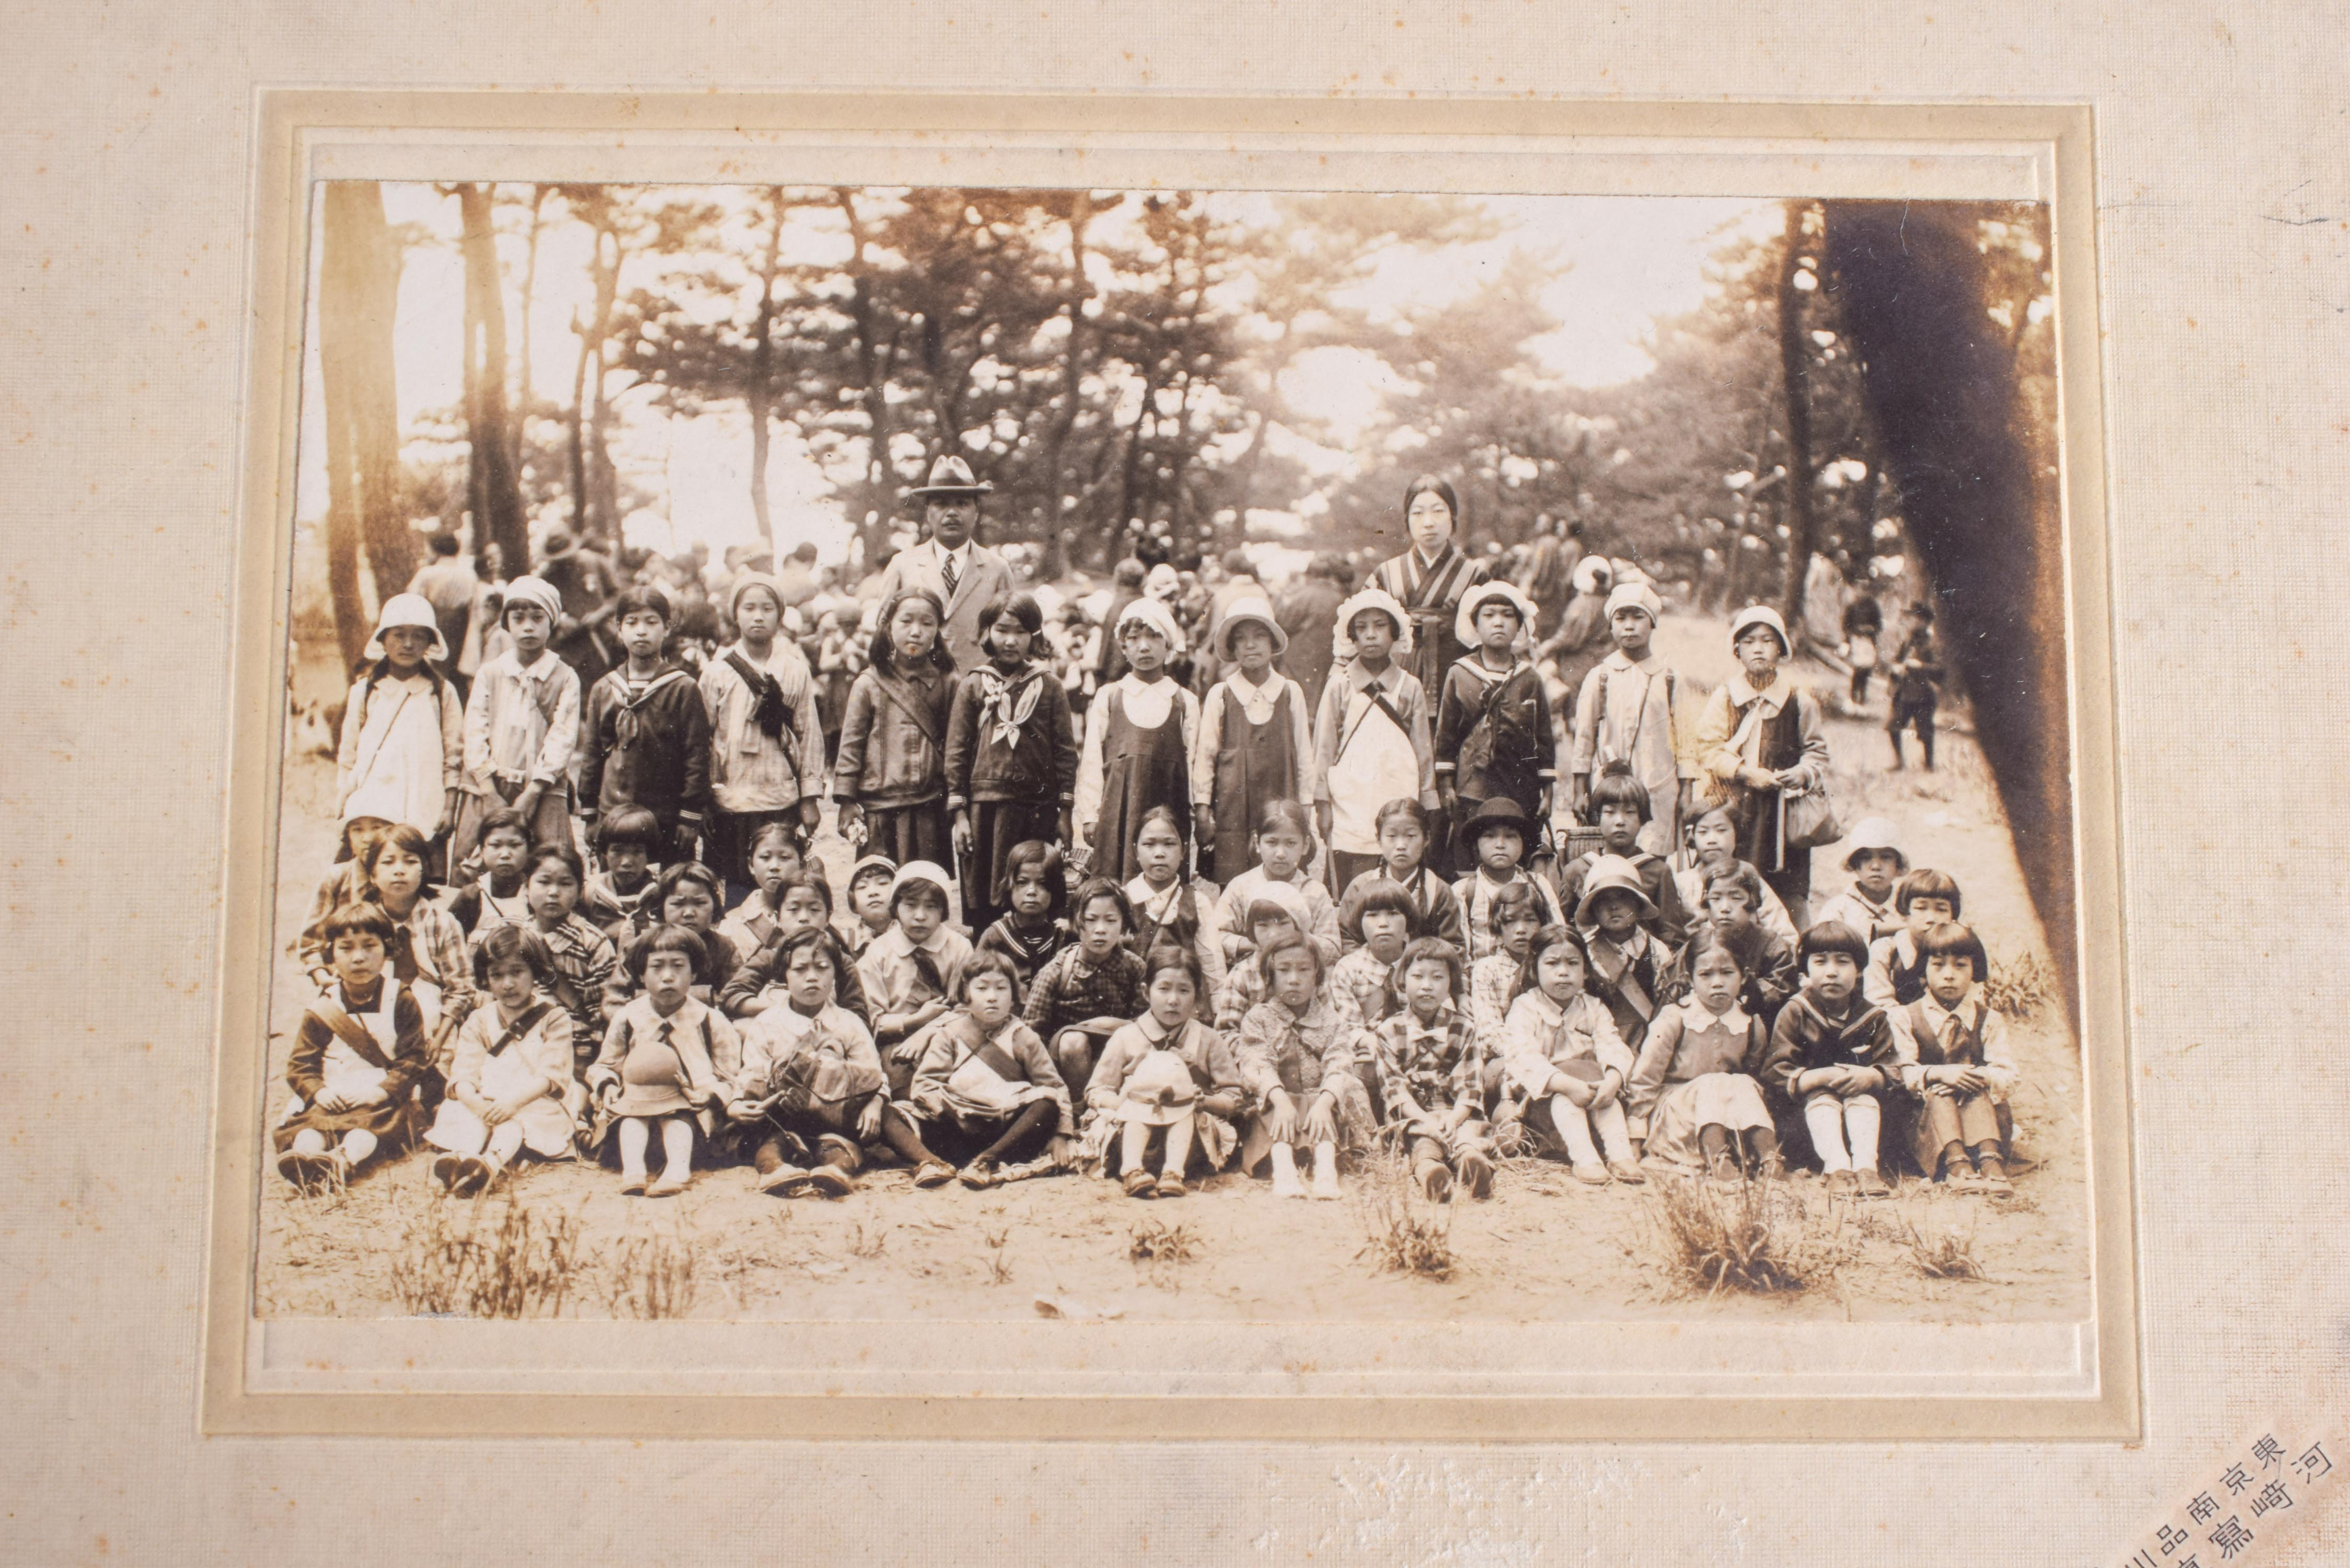 OLD JAPANESE PHOTOGRAPHS. (qty) - Image 2 of 5